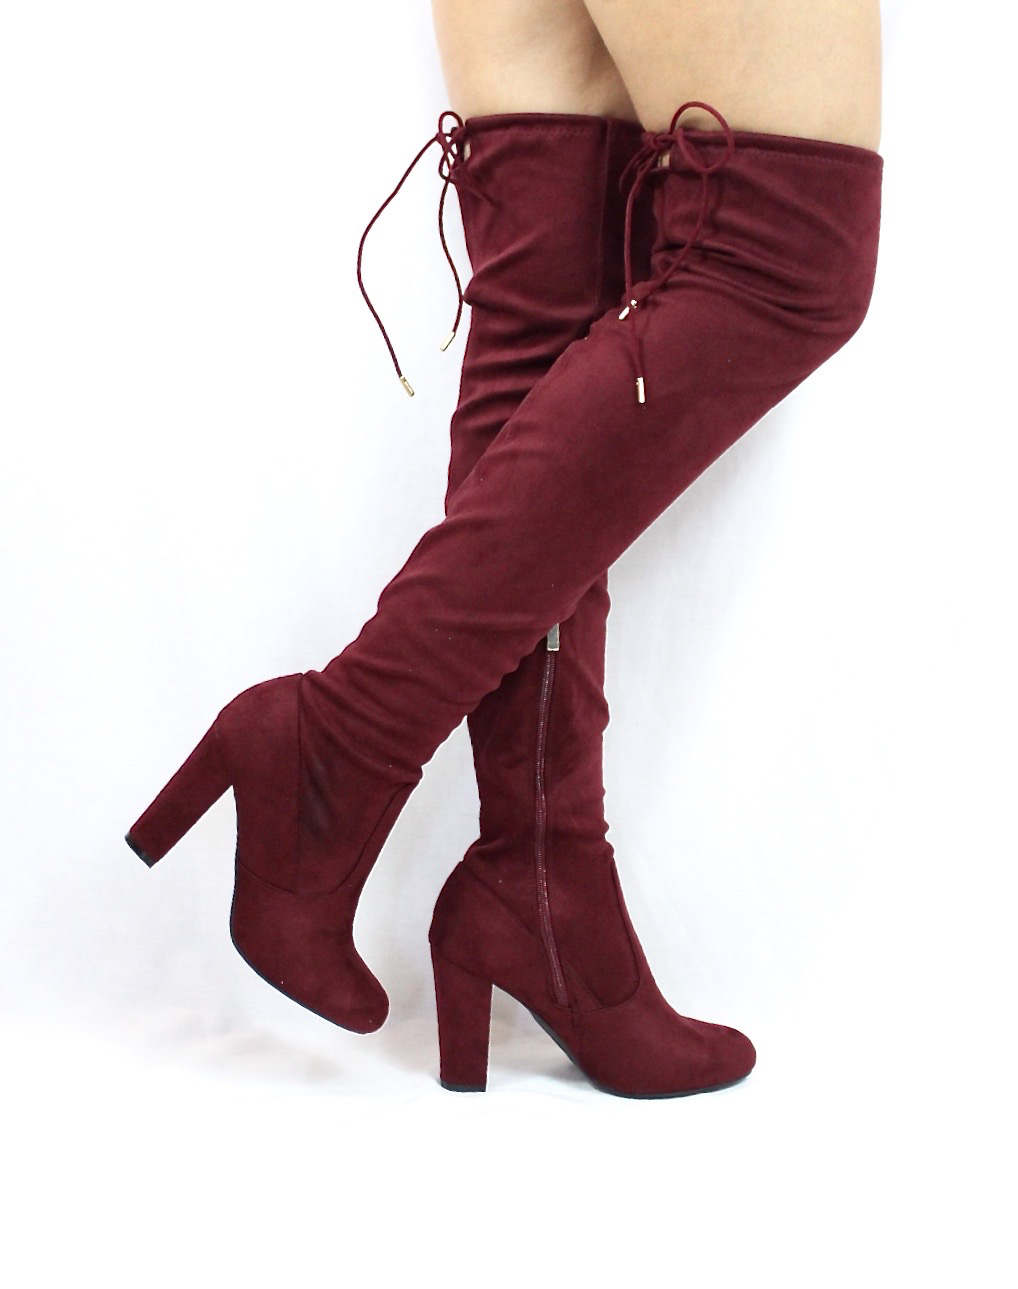 cee63bd623 Bamboo Hilltop-20 Burgundy Over the Knee Chunky Heel Boots-3927